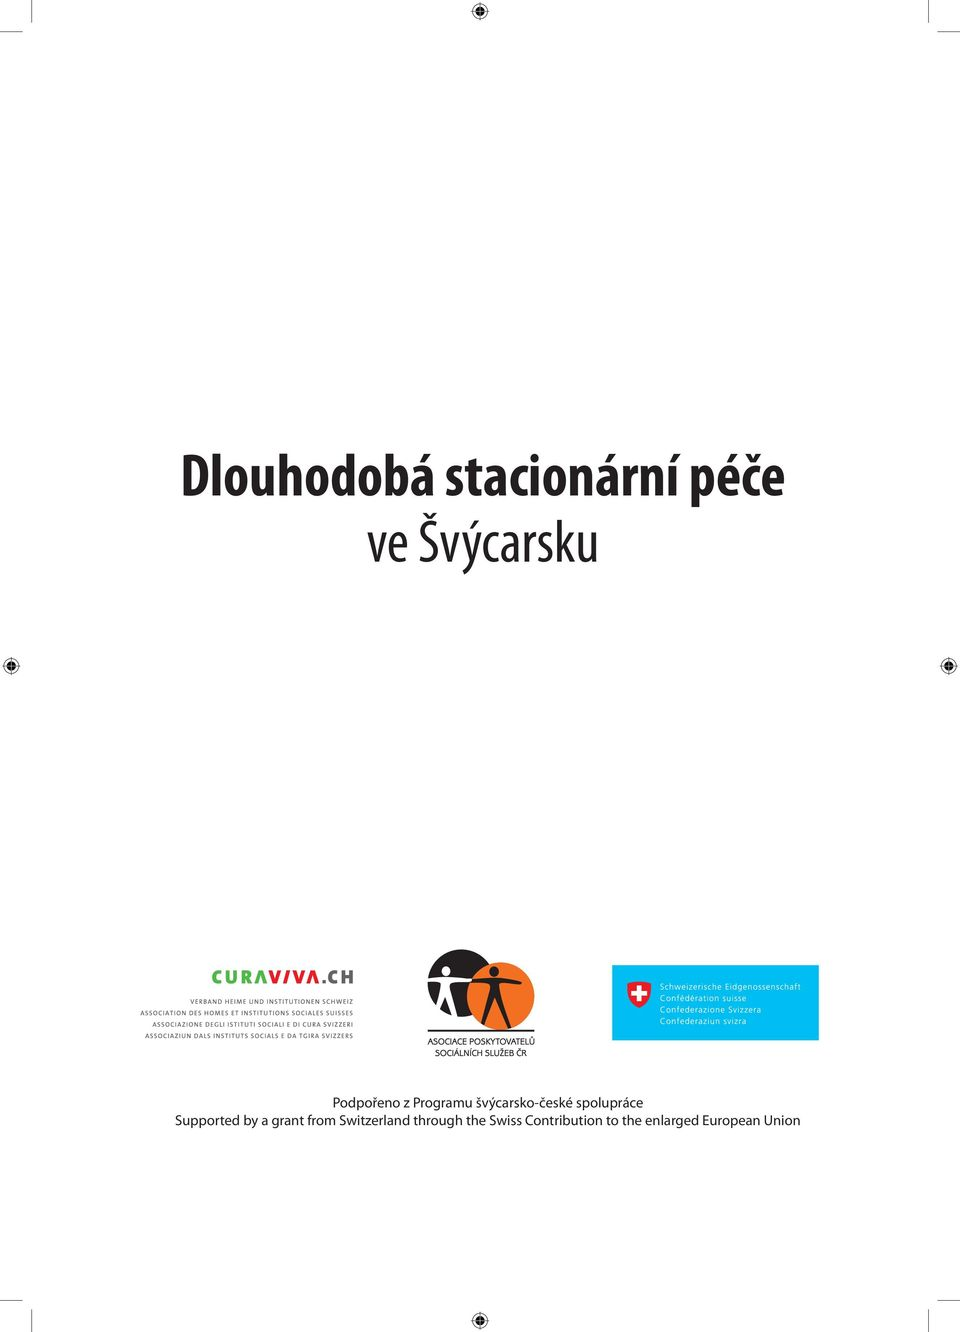 spolupráce Supported by a grant from